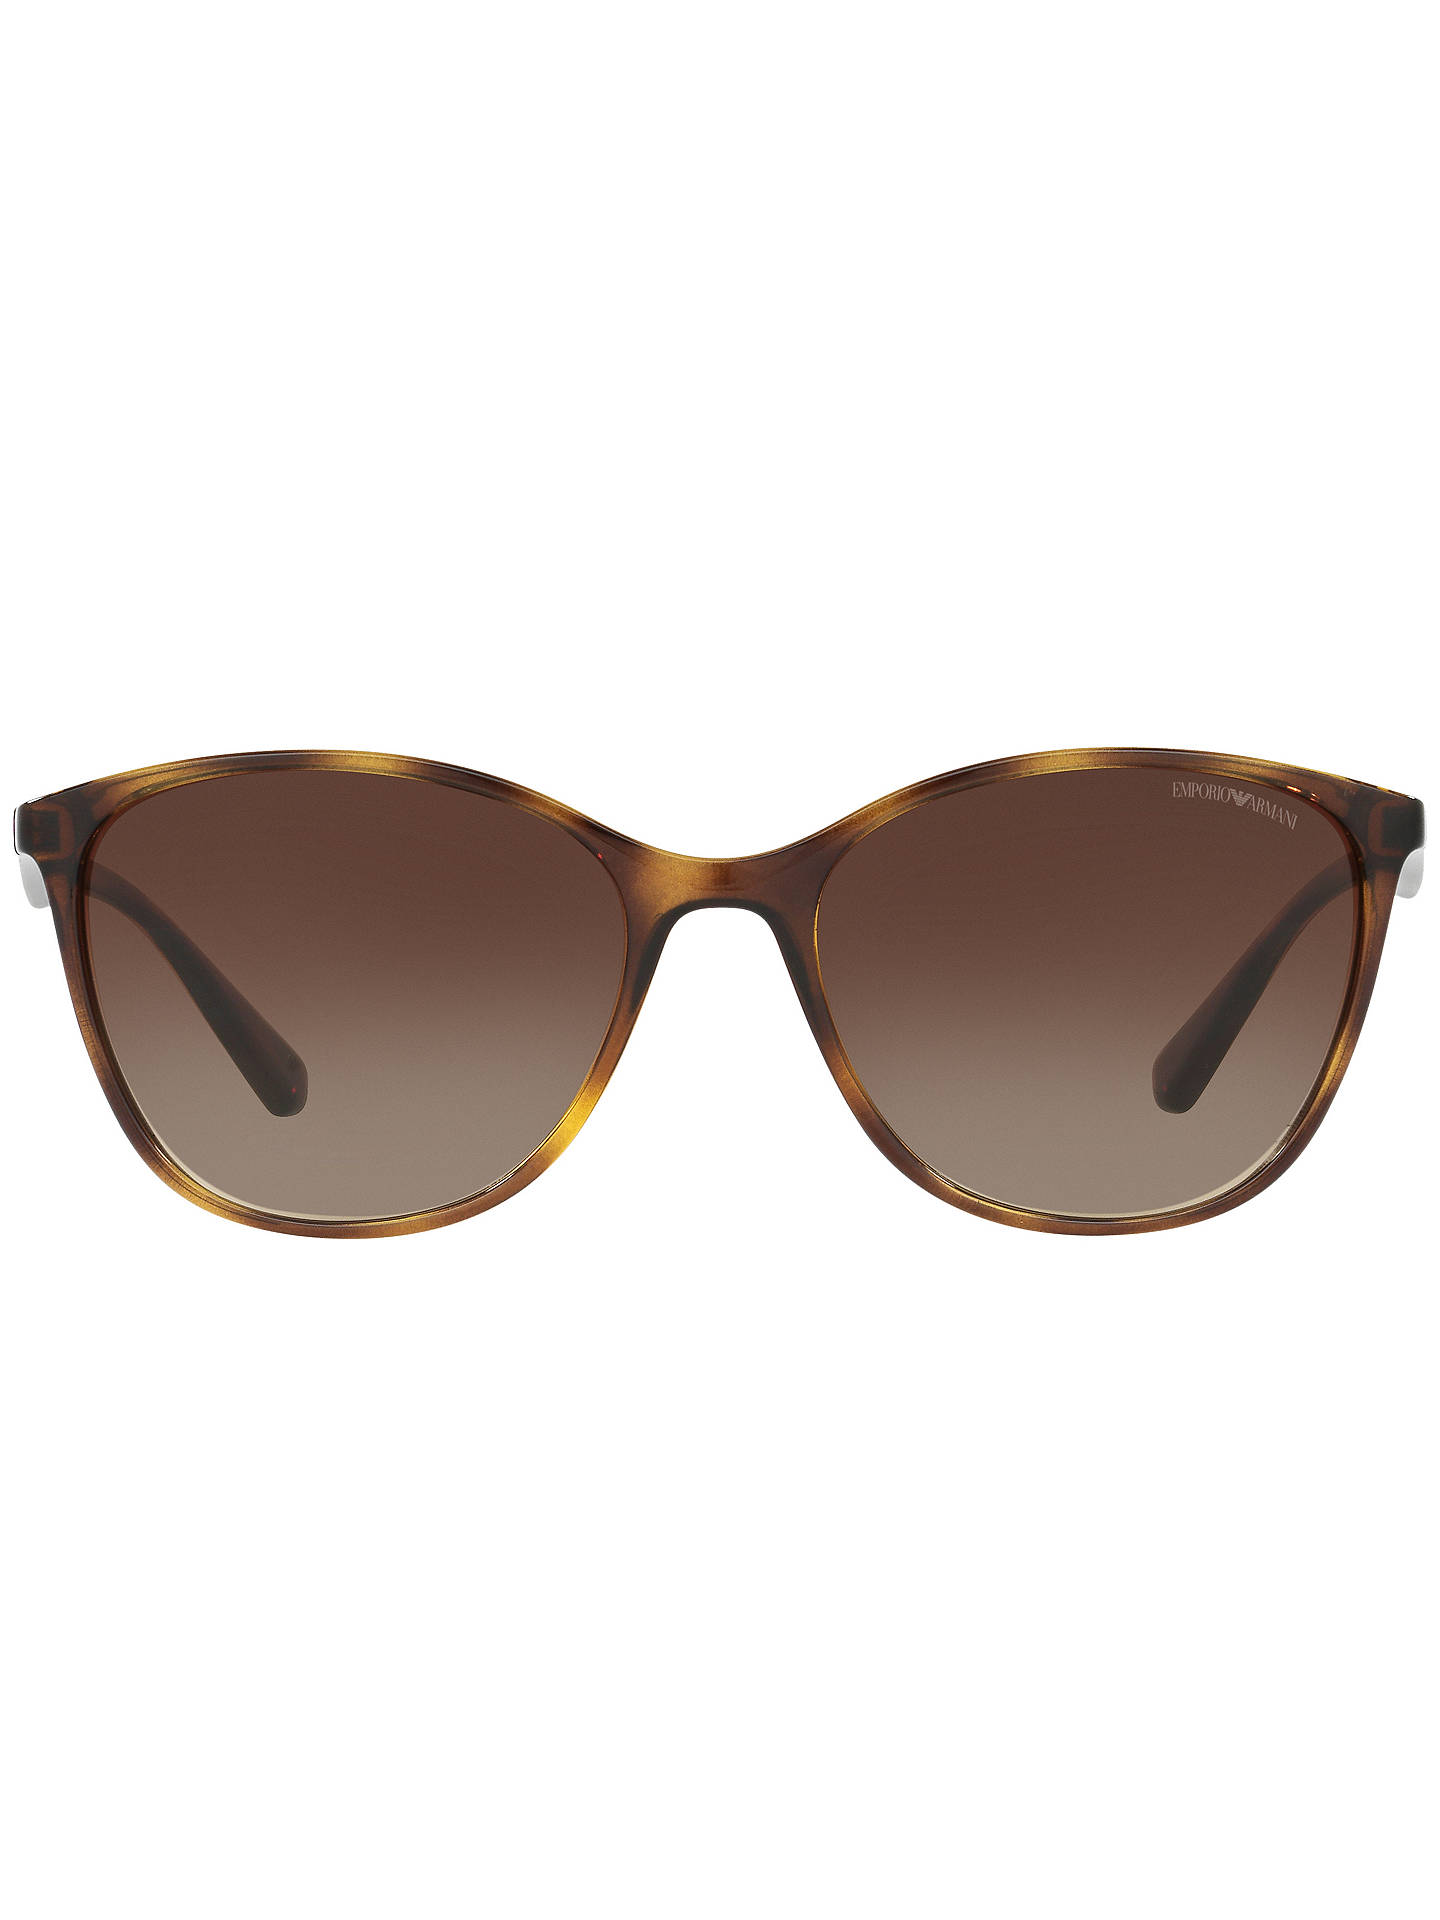 5a5d46db3b24 Emporio Armani EA4073 Cat s Eye Sunglasses at John Lewis   Partners